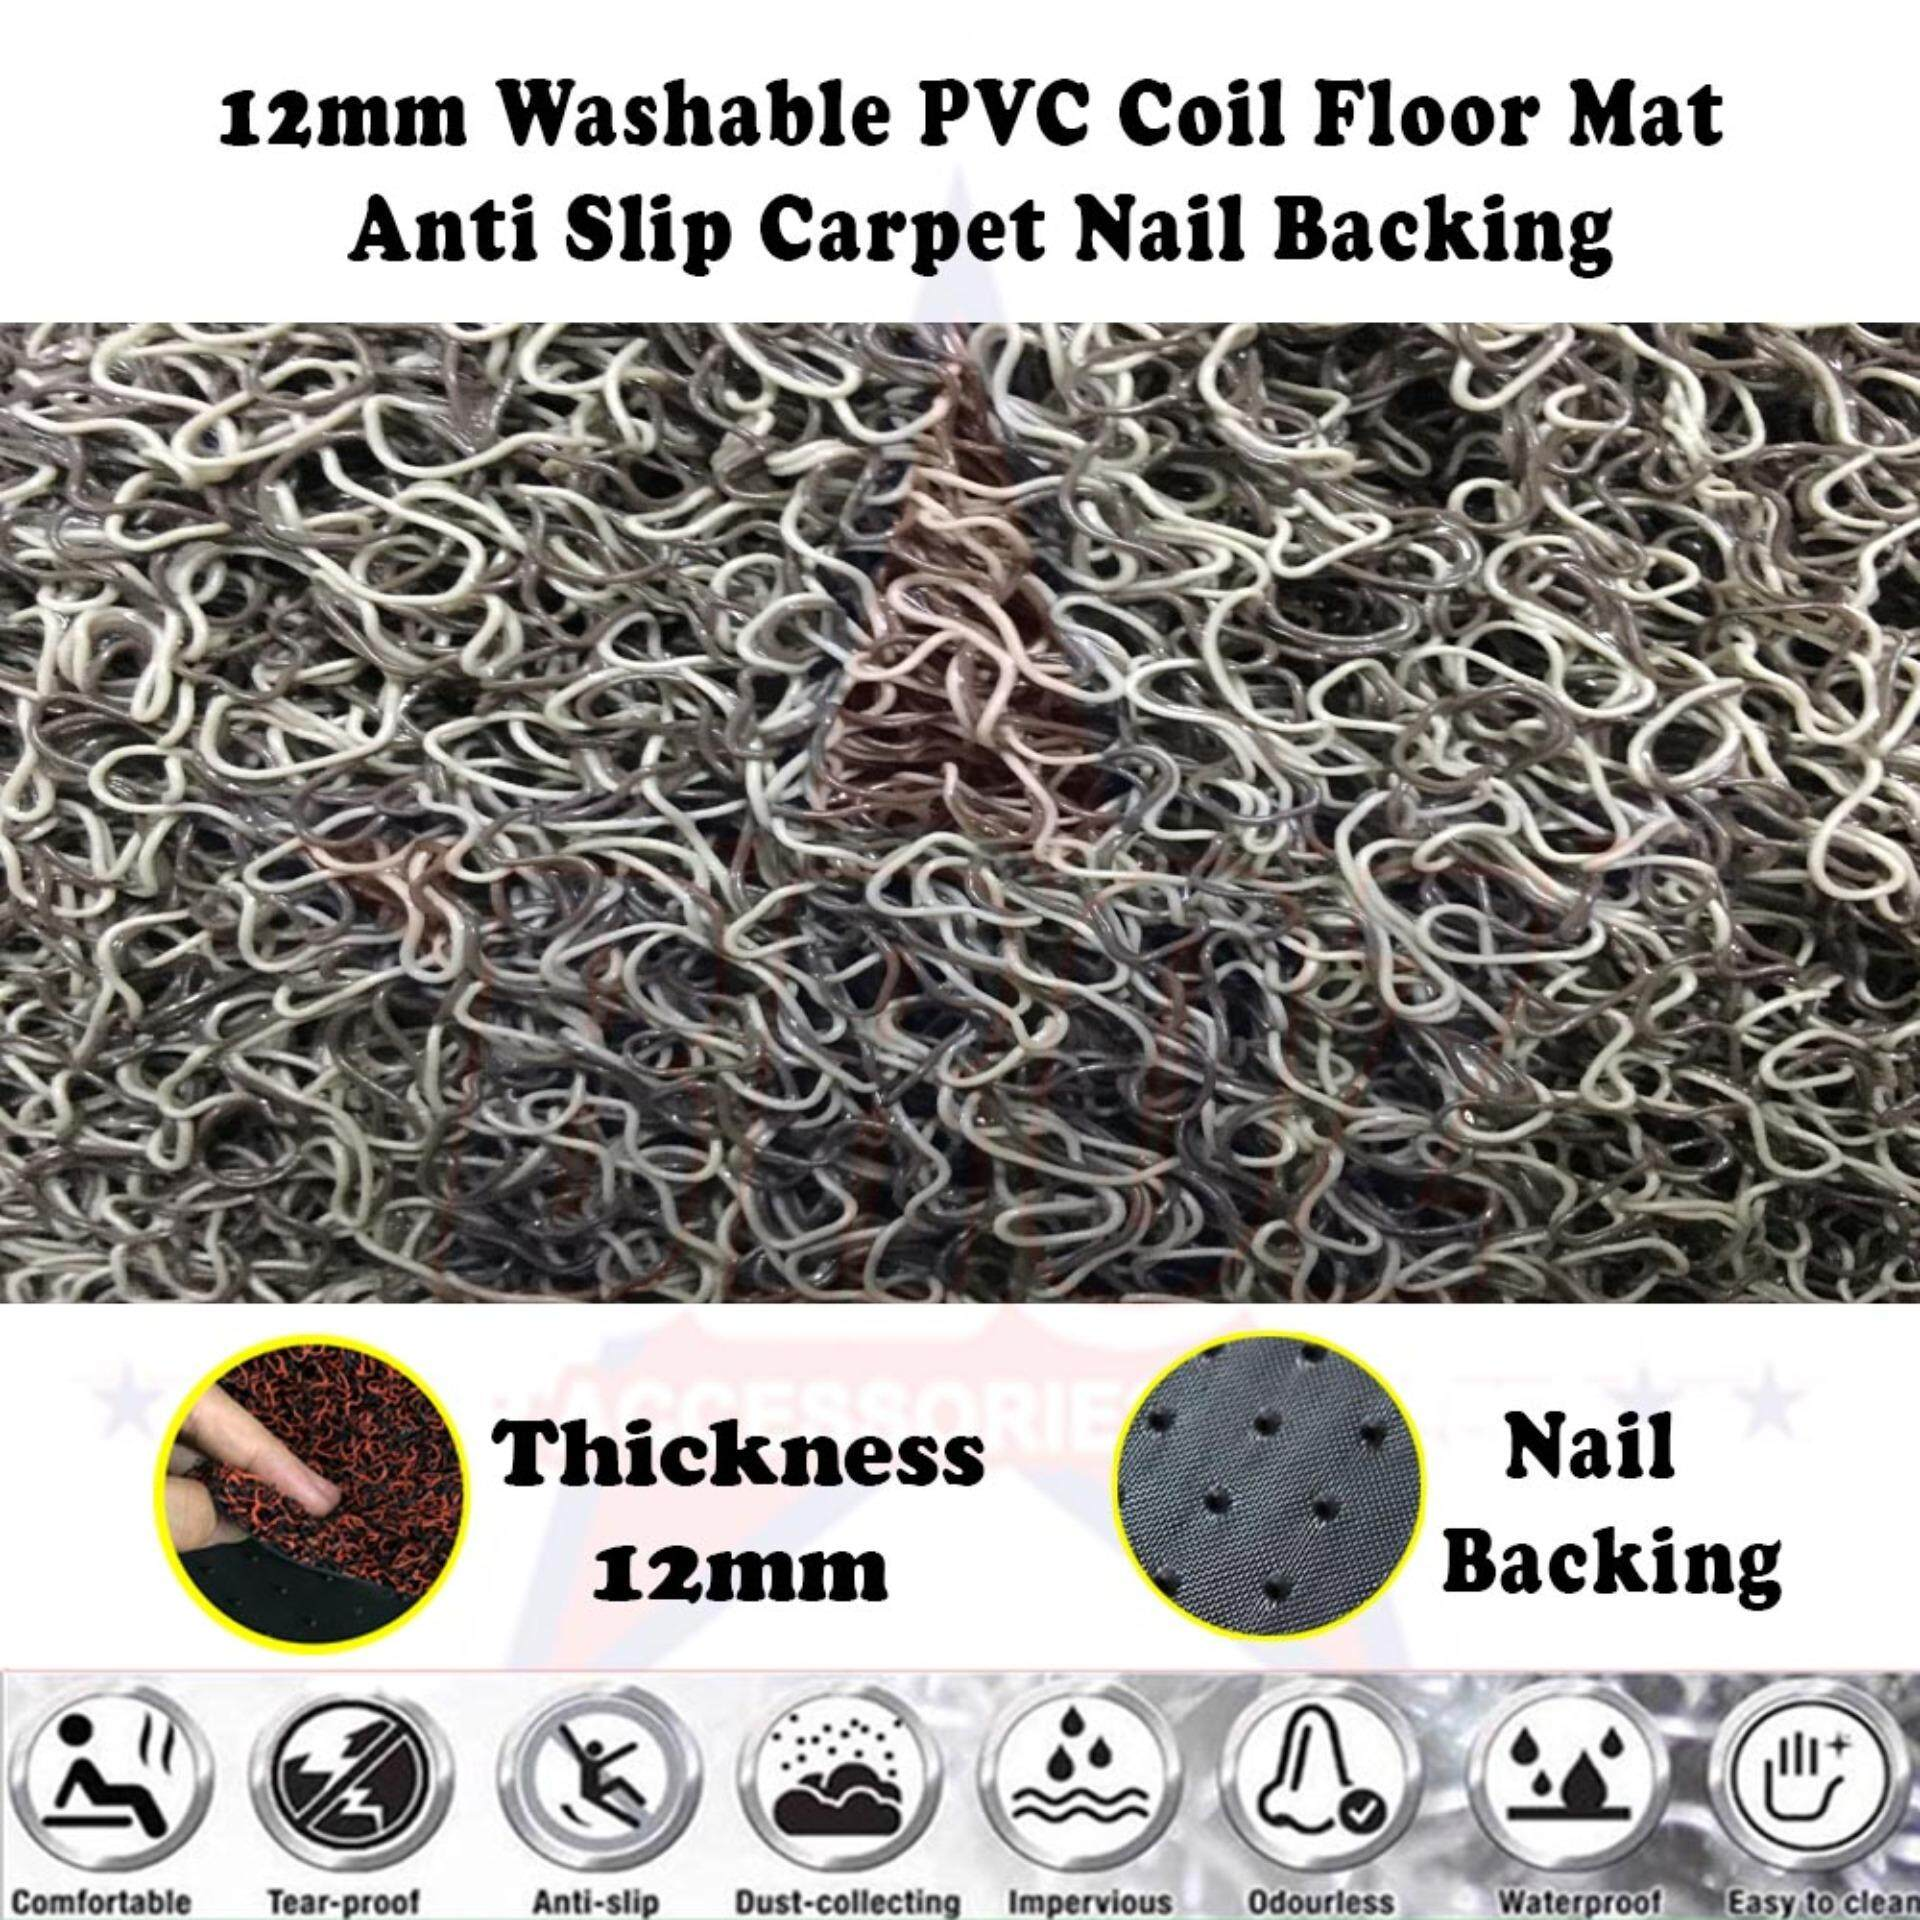 12mm Washable PVC Coil Floor Mat For Home / Office Used - 80cm x 60cm